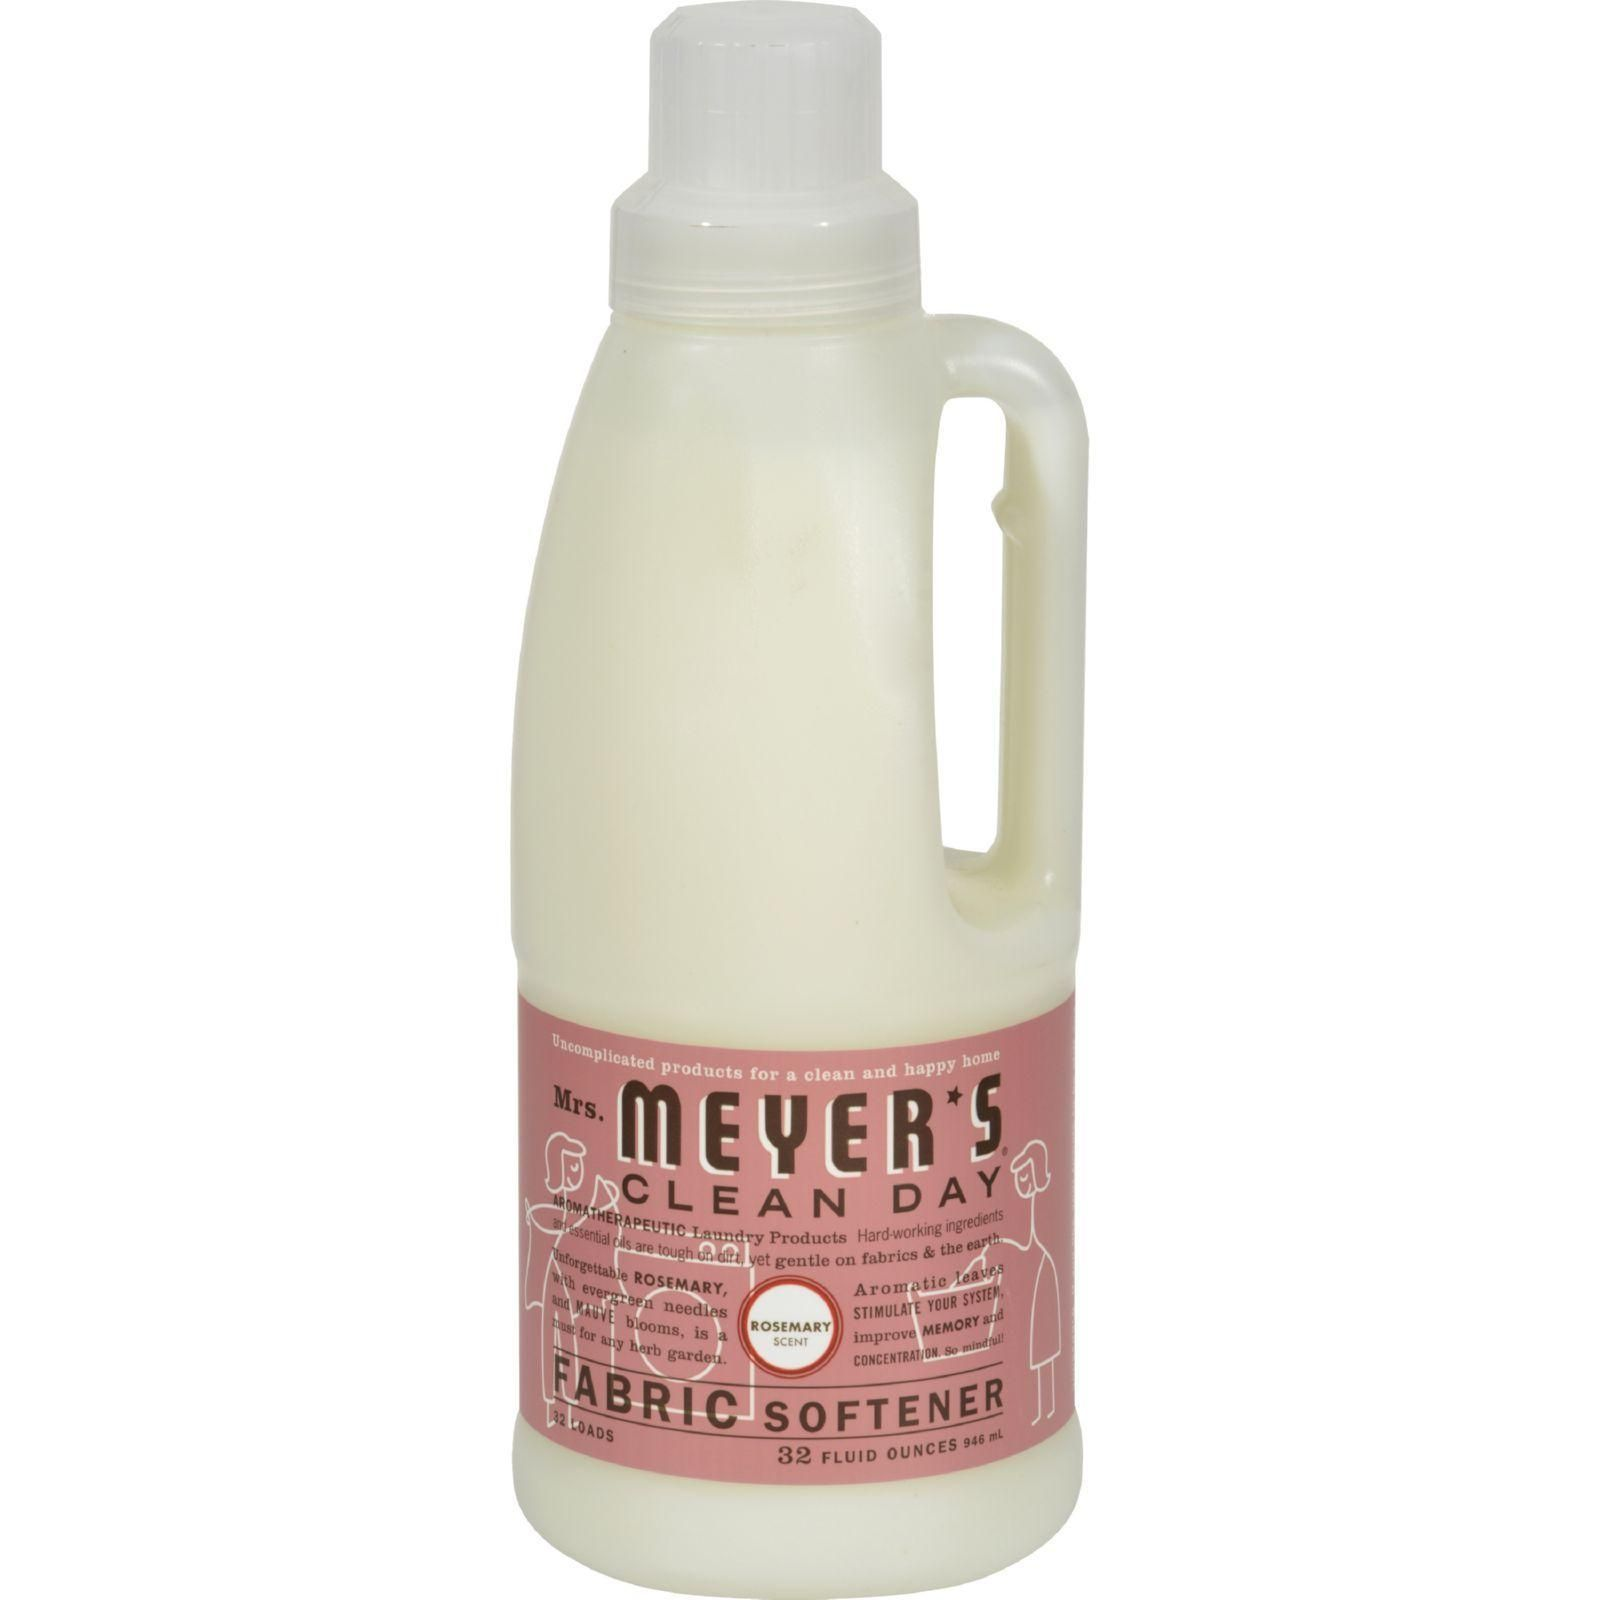 Mrs Meyer S Clean Day Rosemary Fabric Softener Reduces Static Makes Ironing Easier And Softening Clothing Fabric Softener Cleaning Day Liquid Fabric Softener